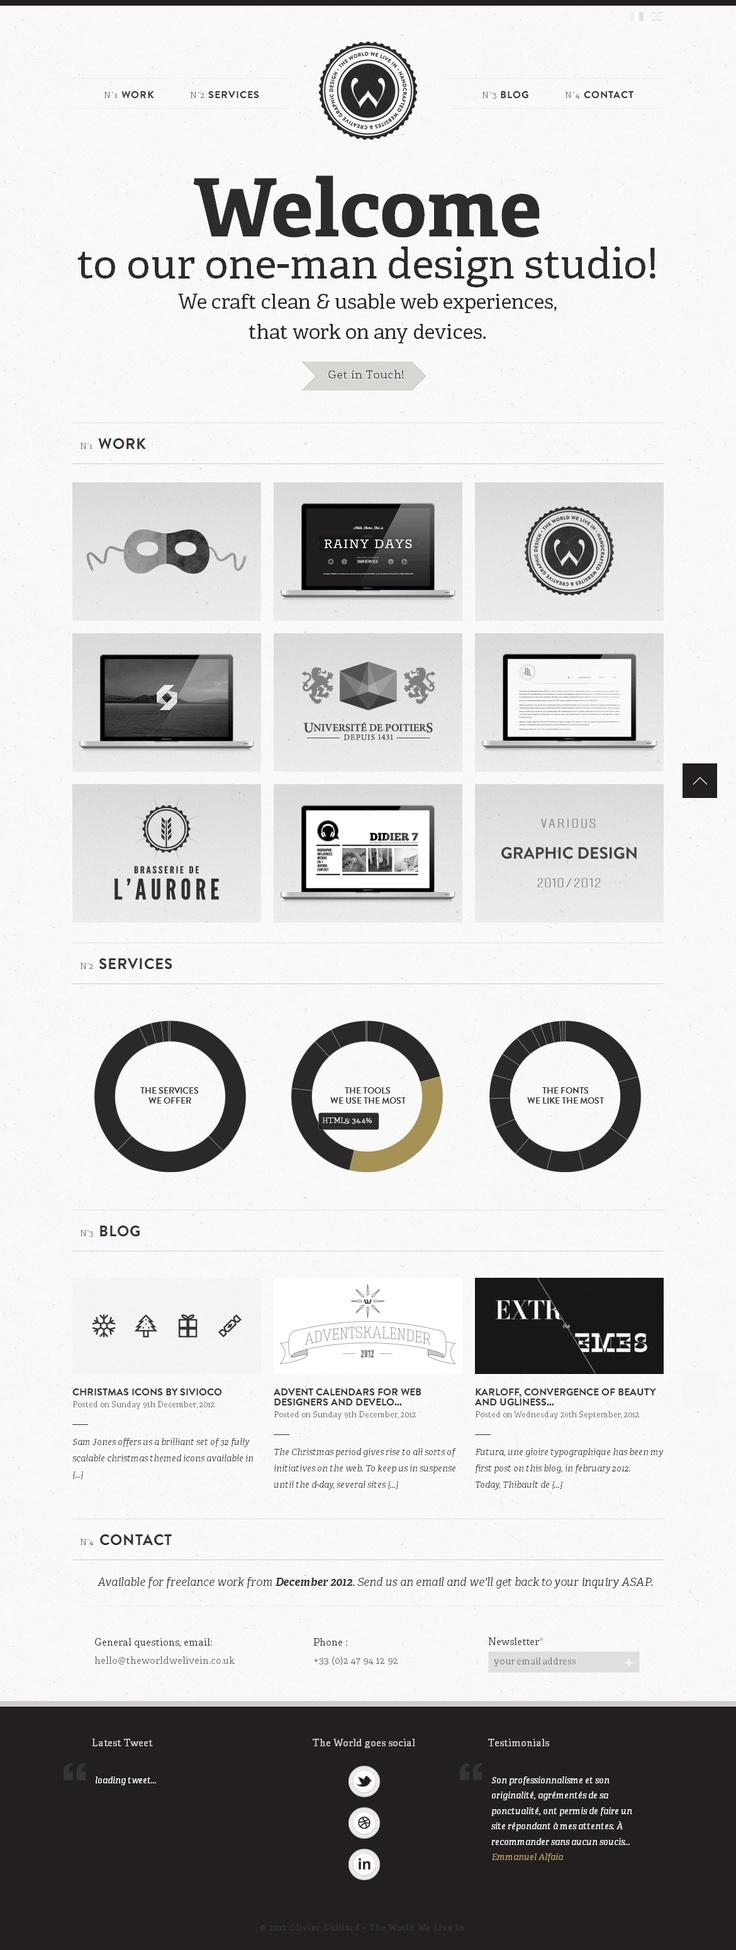 One page site, minimum colour palette, bold typography.